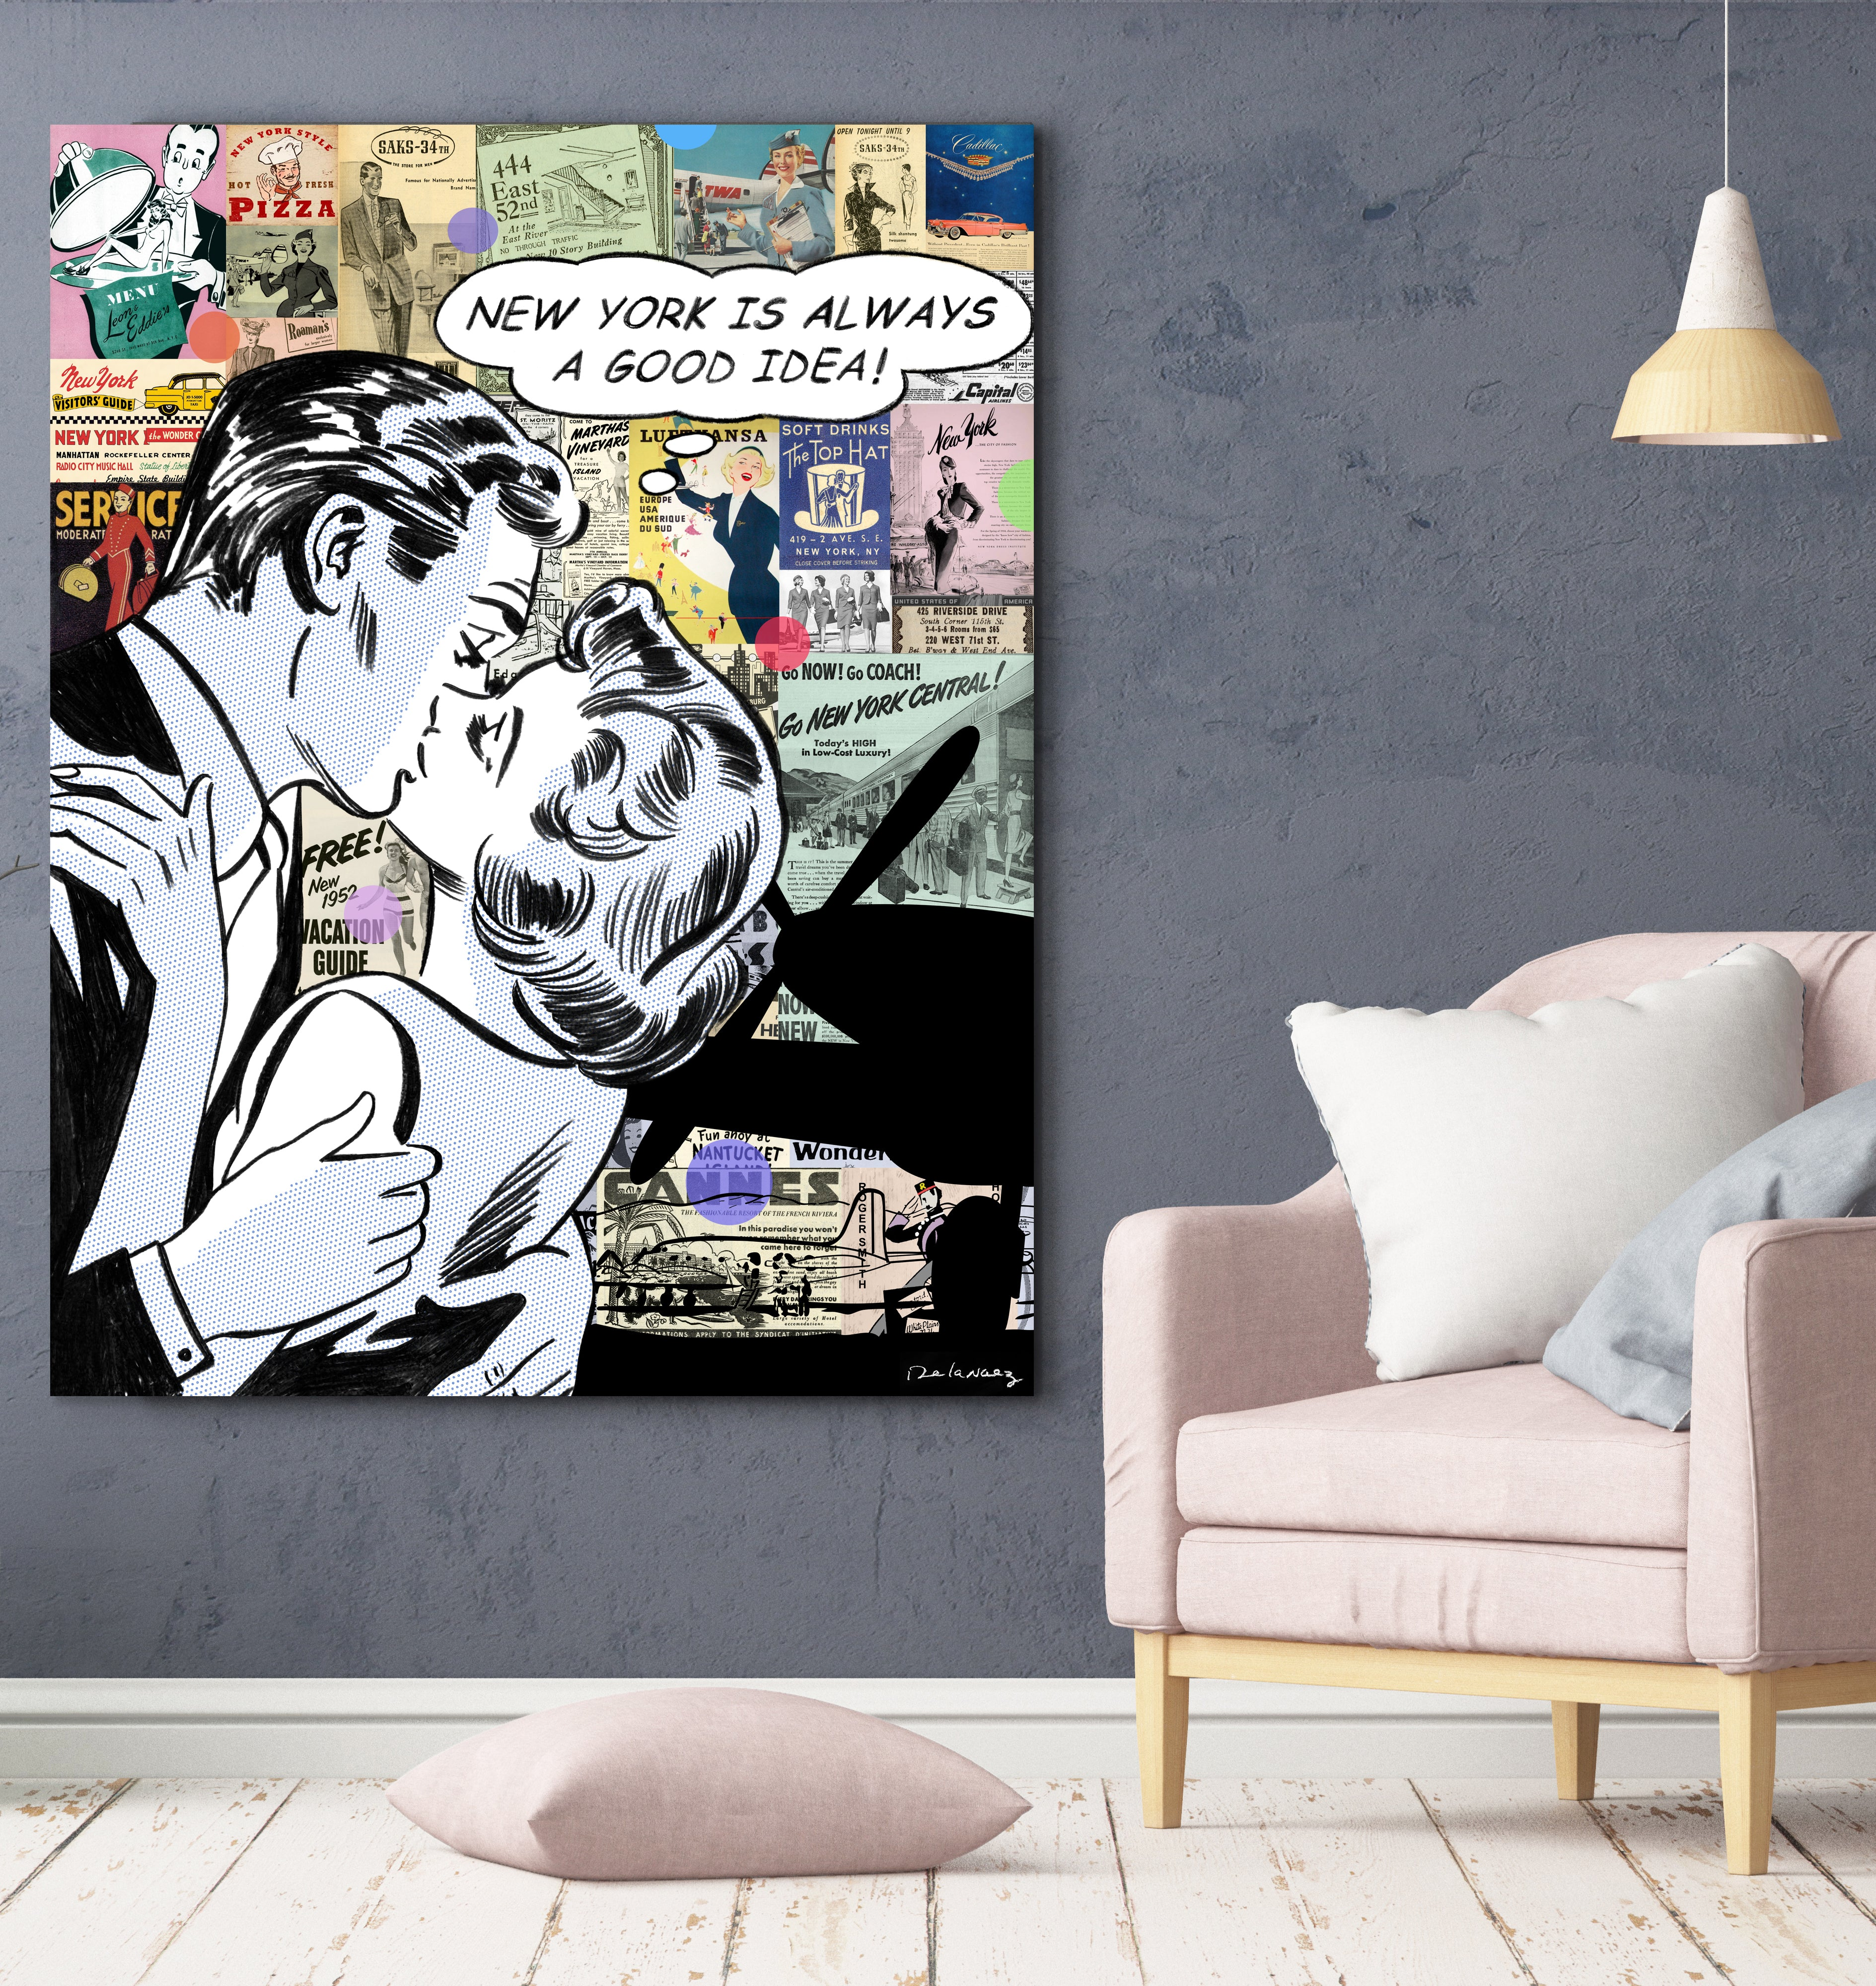 travel lets fly away nelson de la nuez new york nyc luxury travel pop art king of pop art interior design